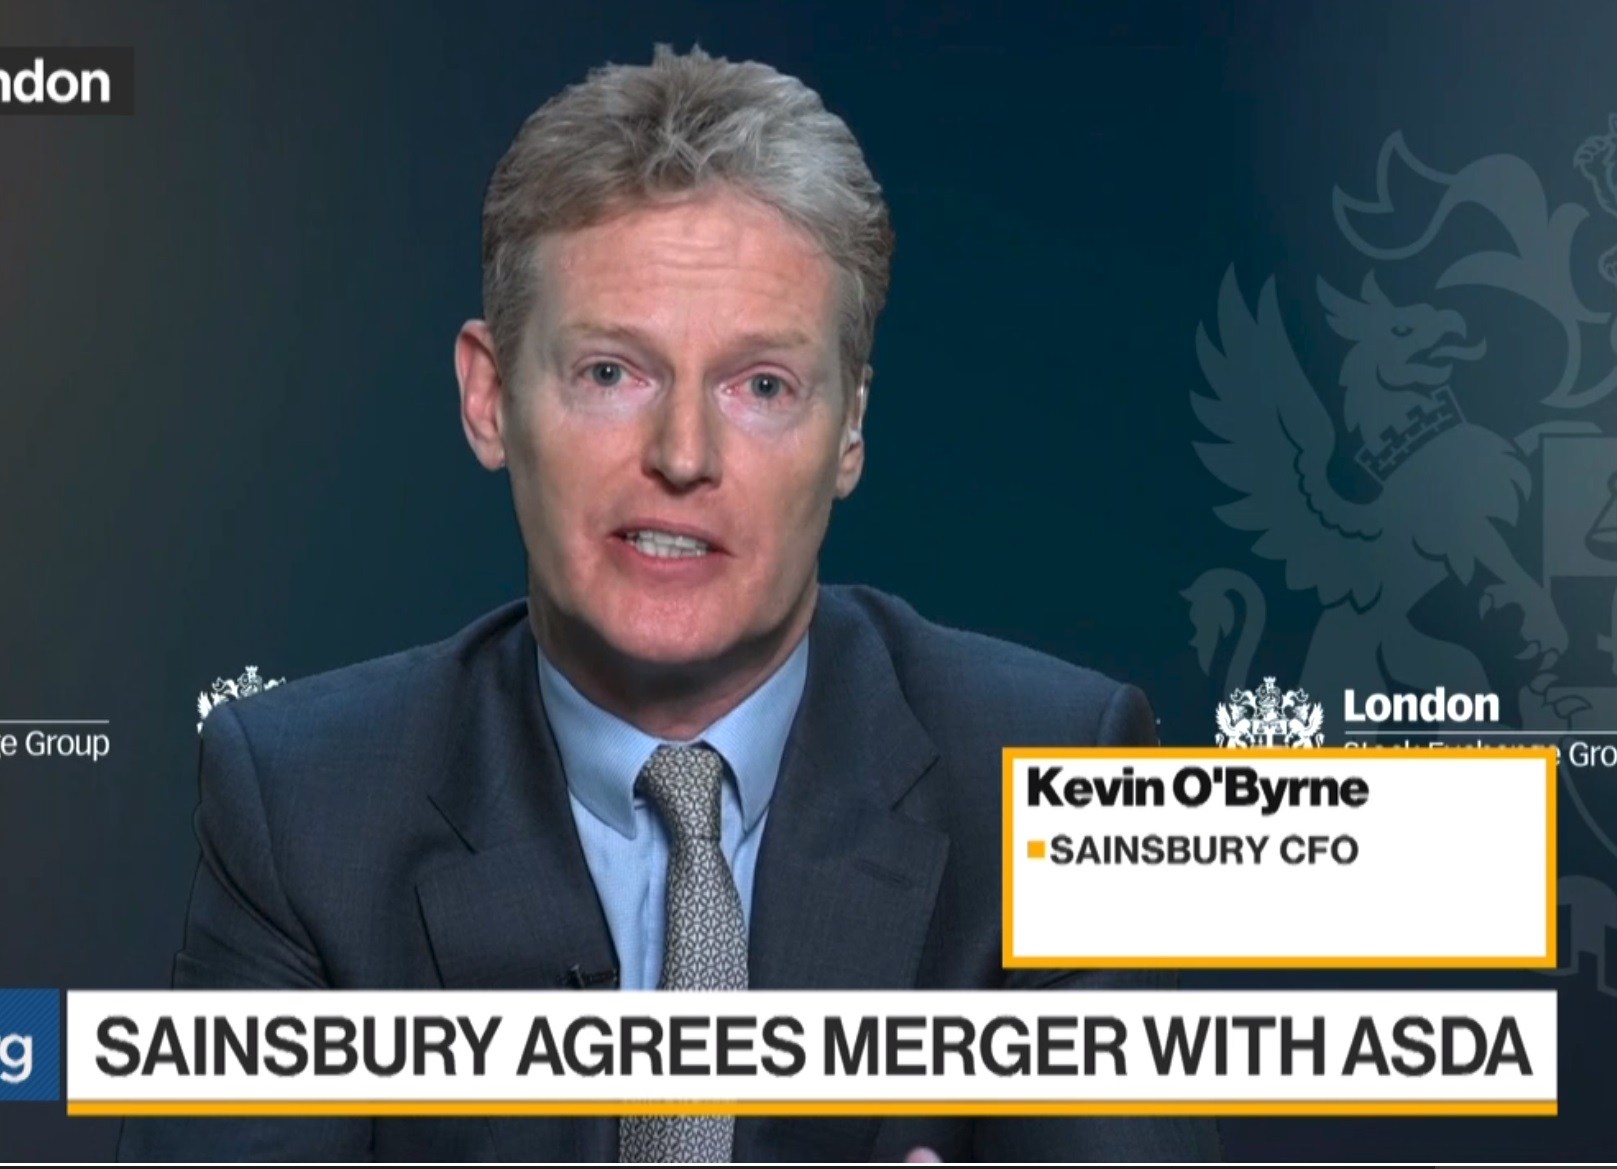 Sainsbury CFO Says Asda Deal `Very Focused' on Competing With Amazon